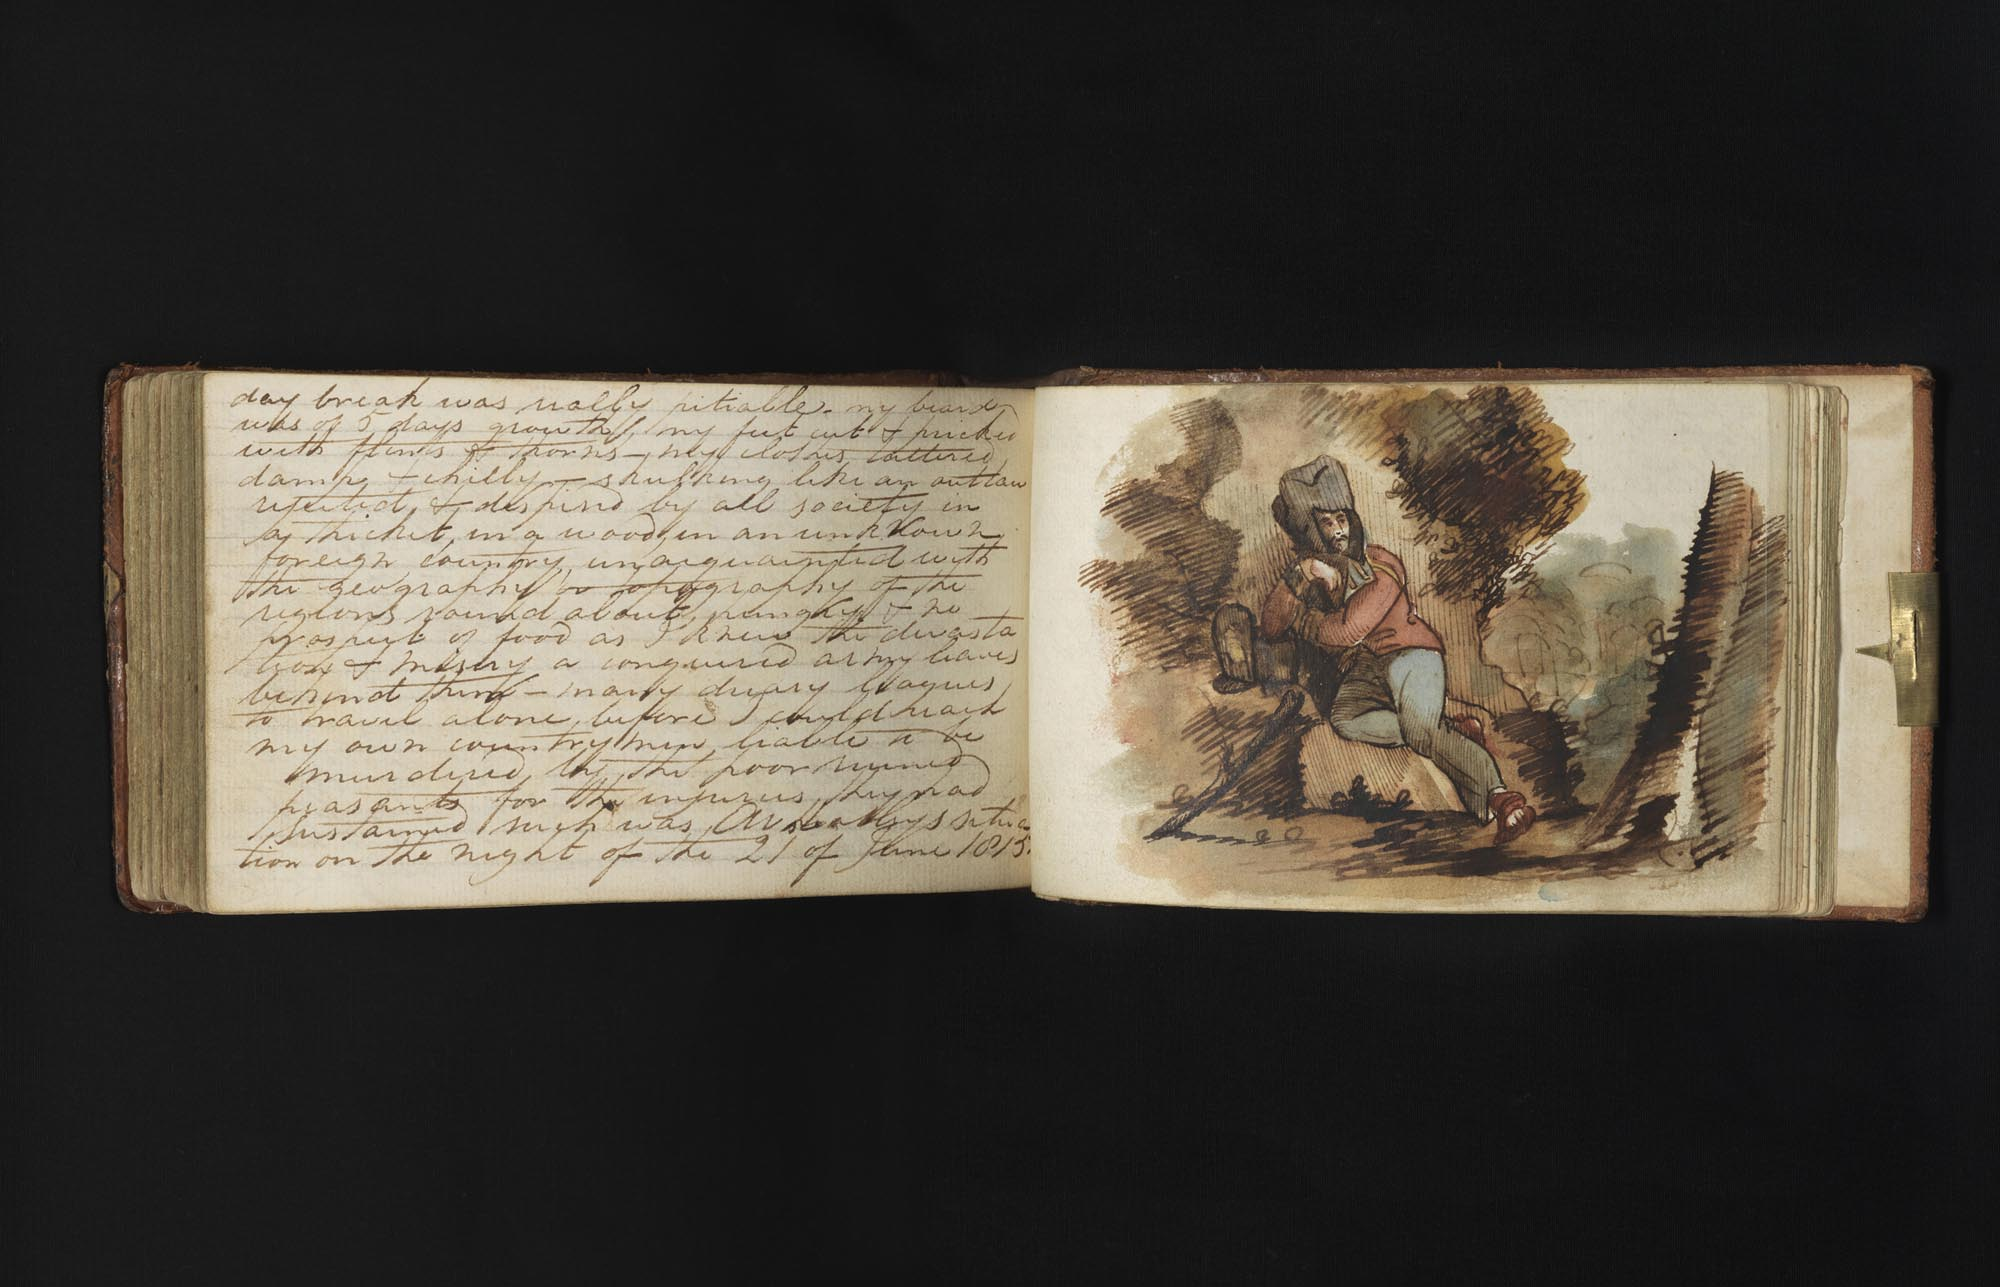 a photo of a diary with one page of handwritten text and a sketch of a soldier resting